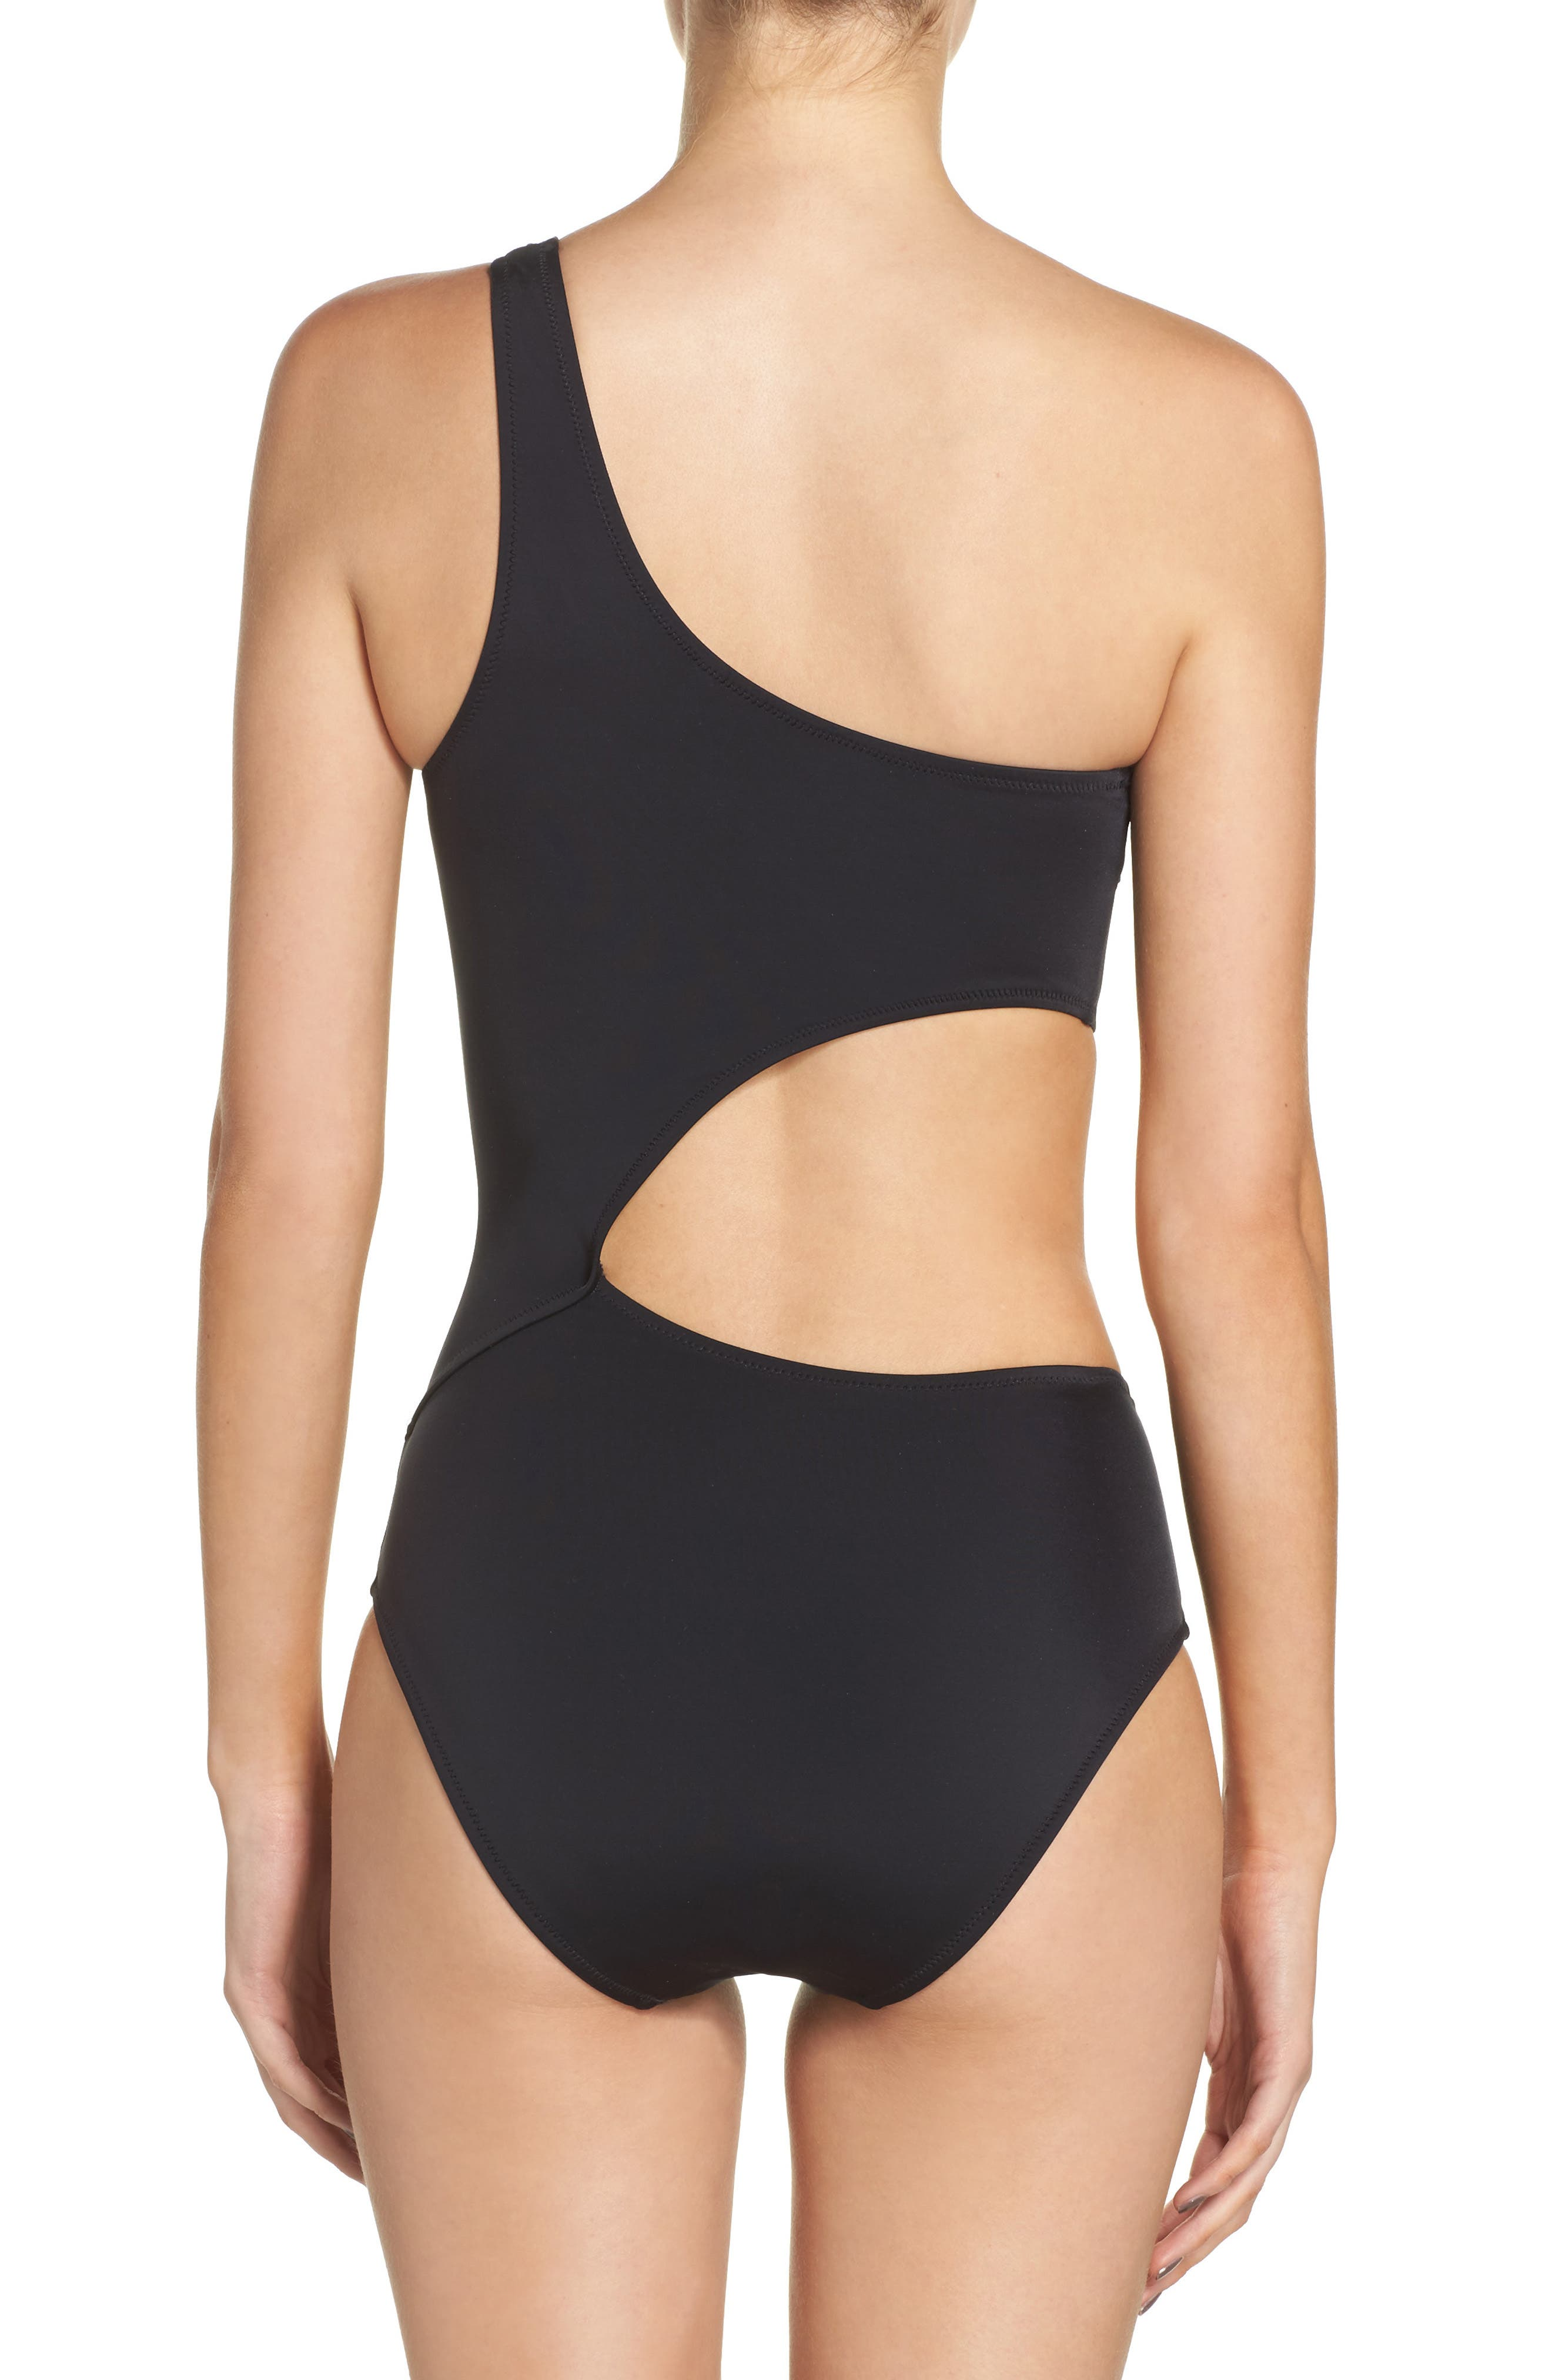 Claudia One-Piece Swimsuit,                             Alternate thumbnail 2, color,                             001